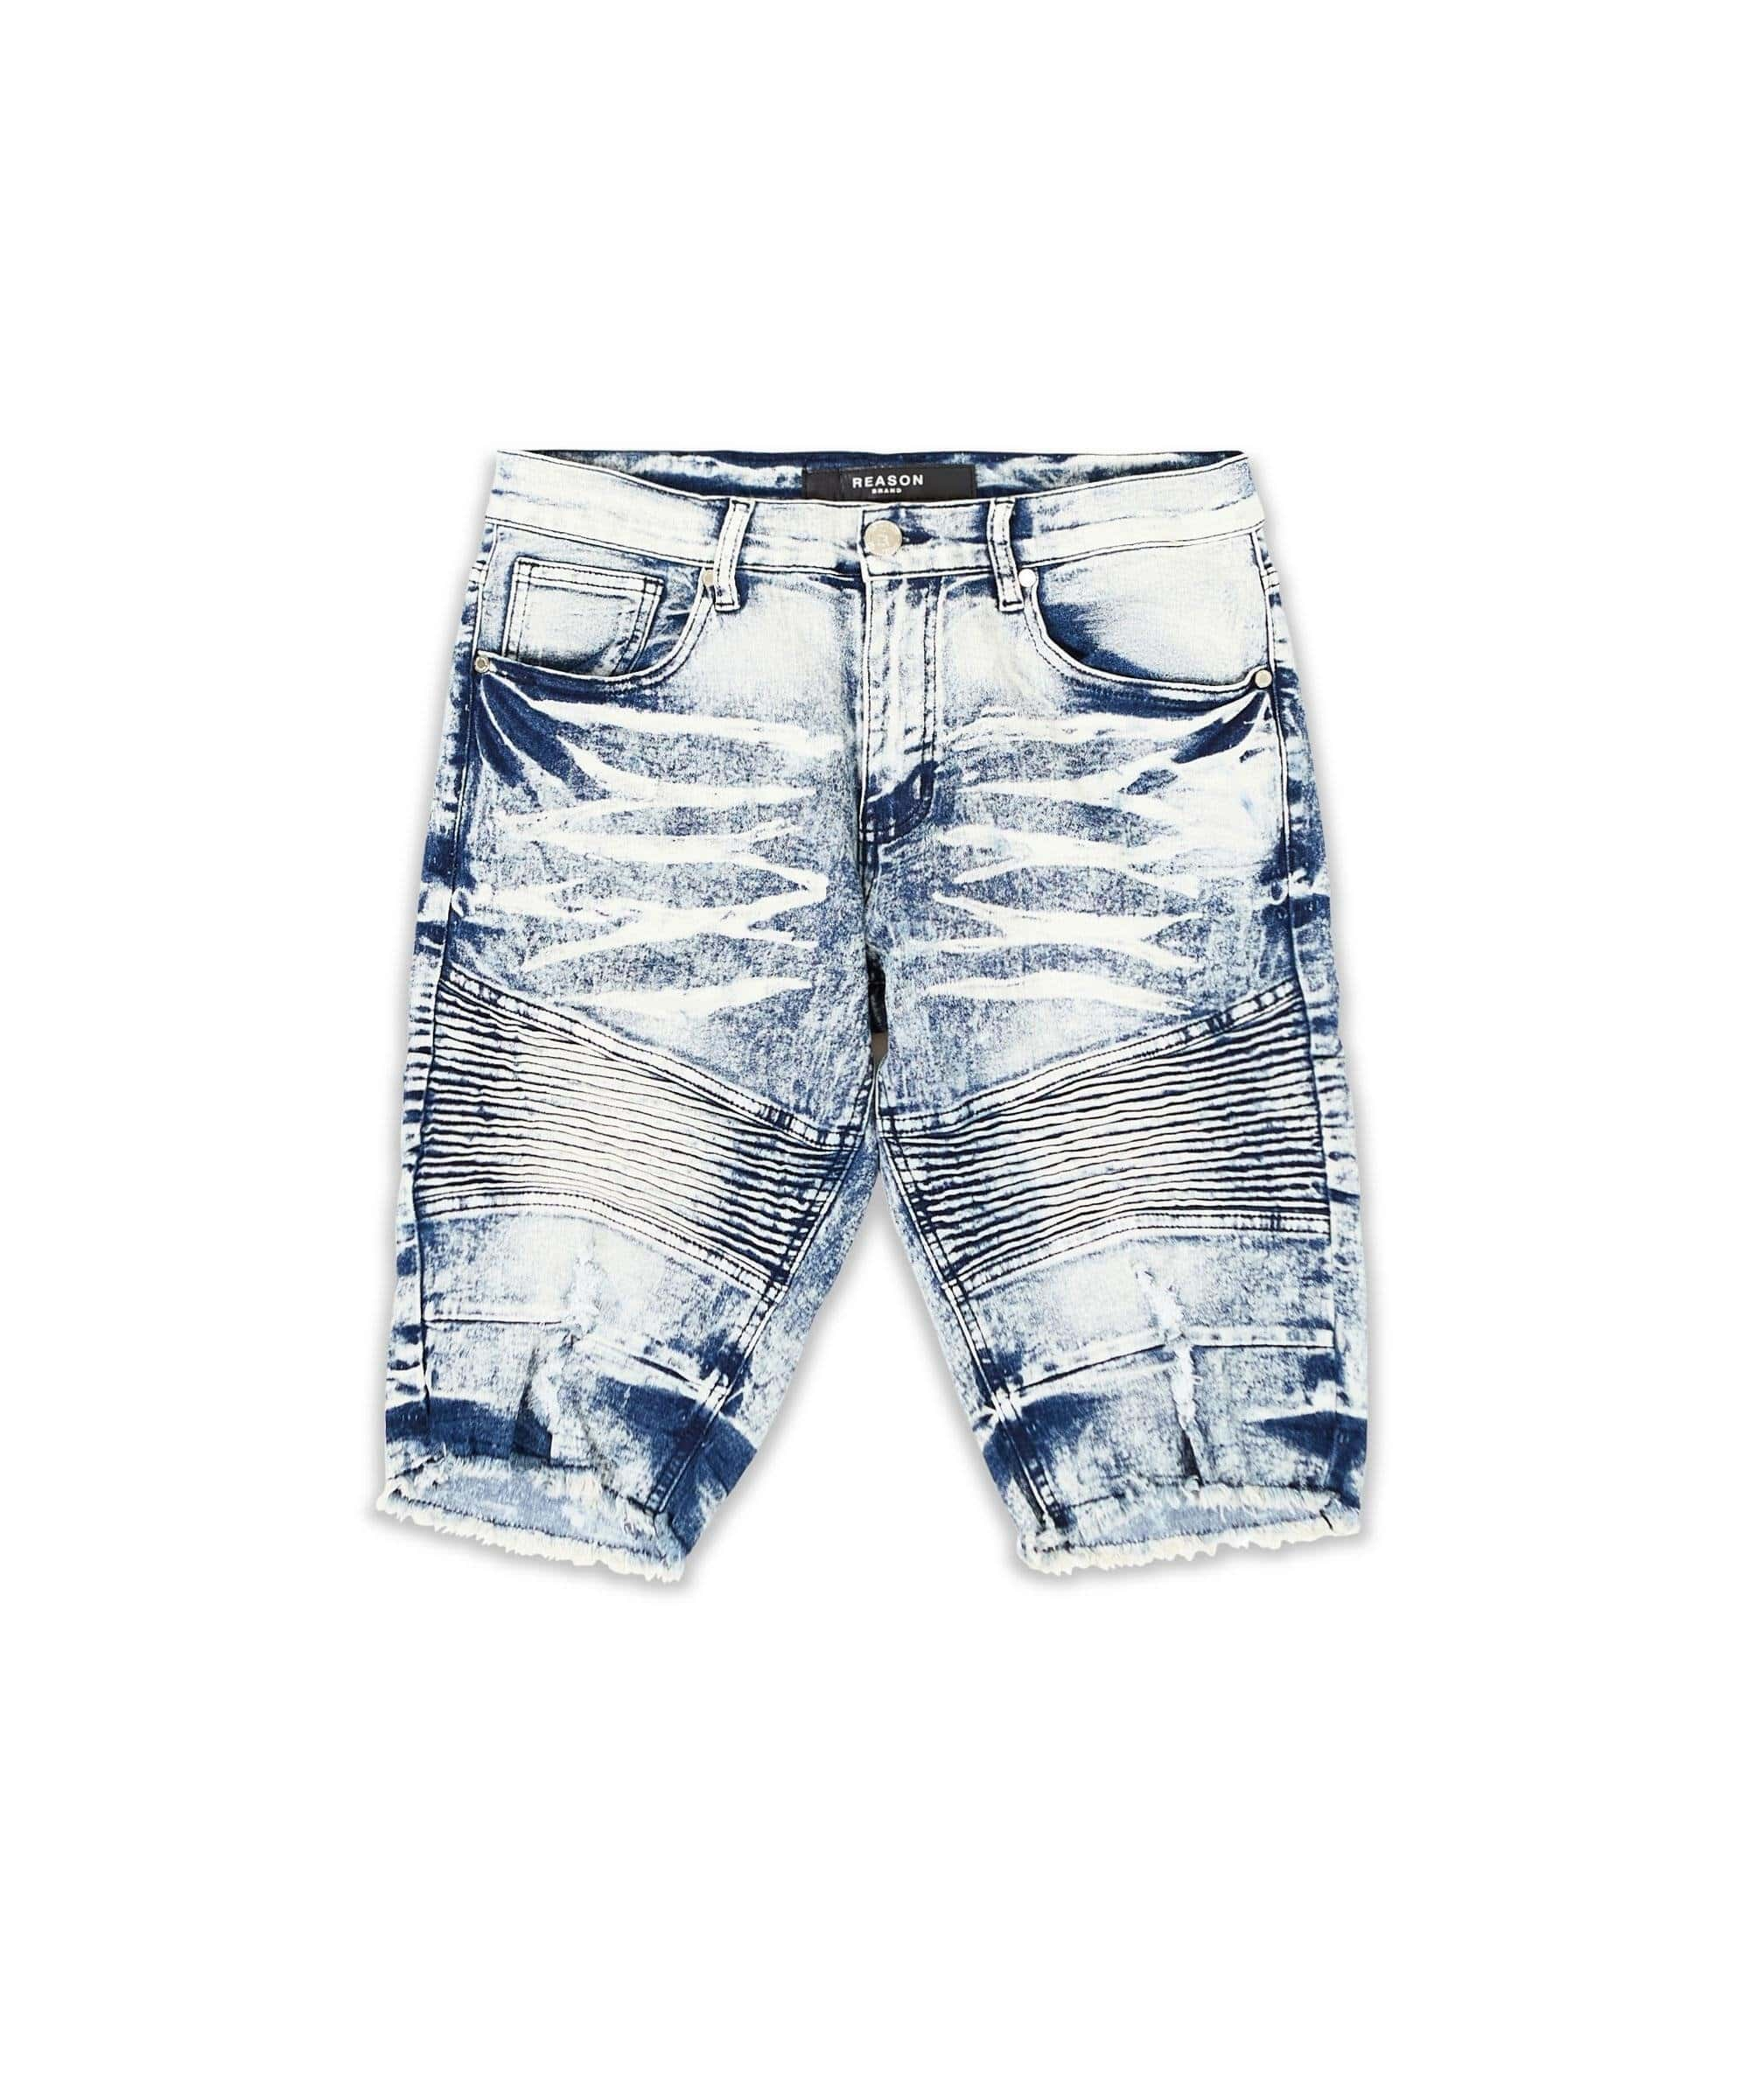 CUMBERLAND DENIM SHORT - Reason Clothing